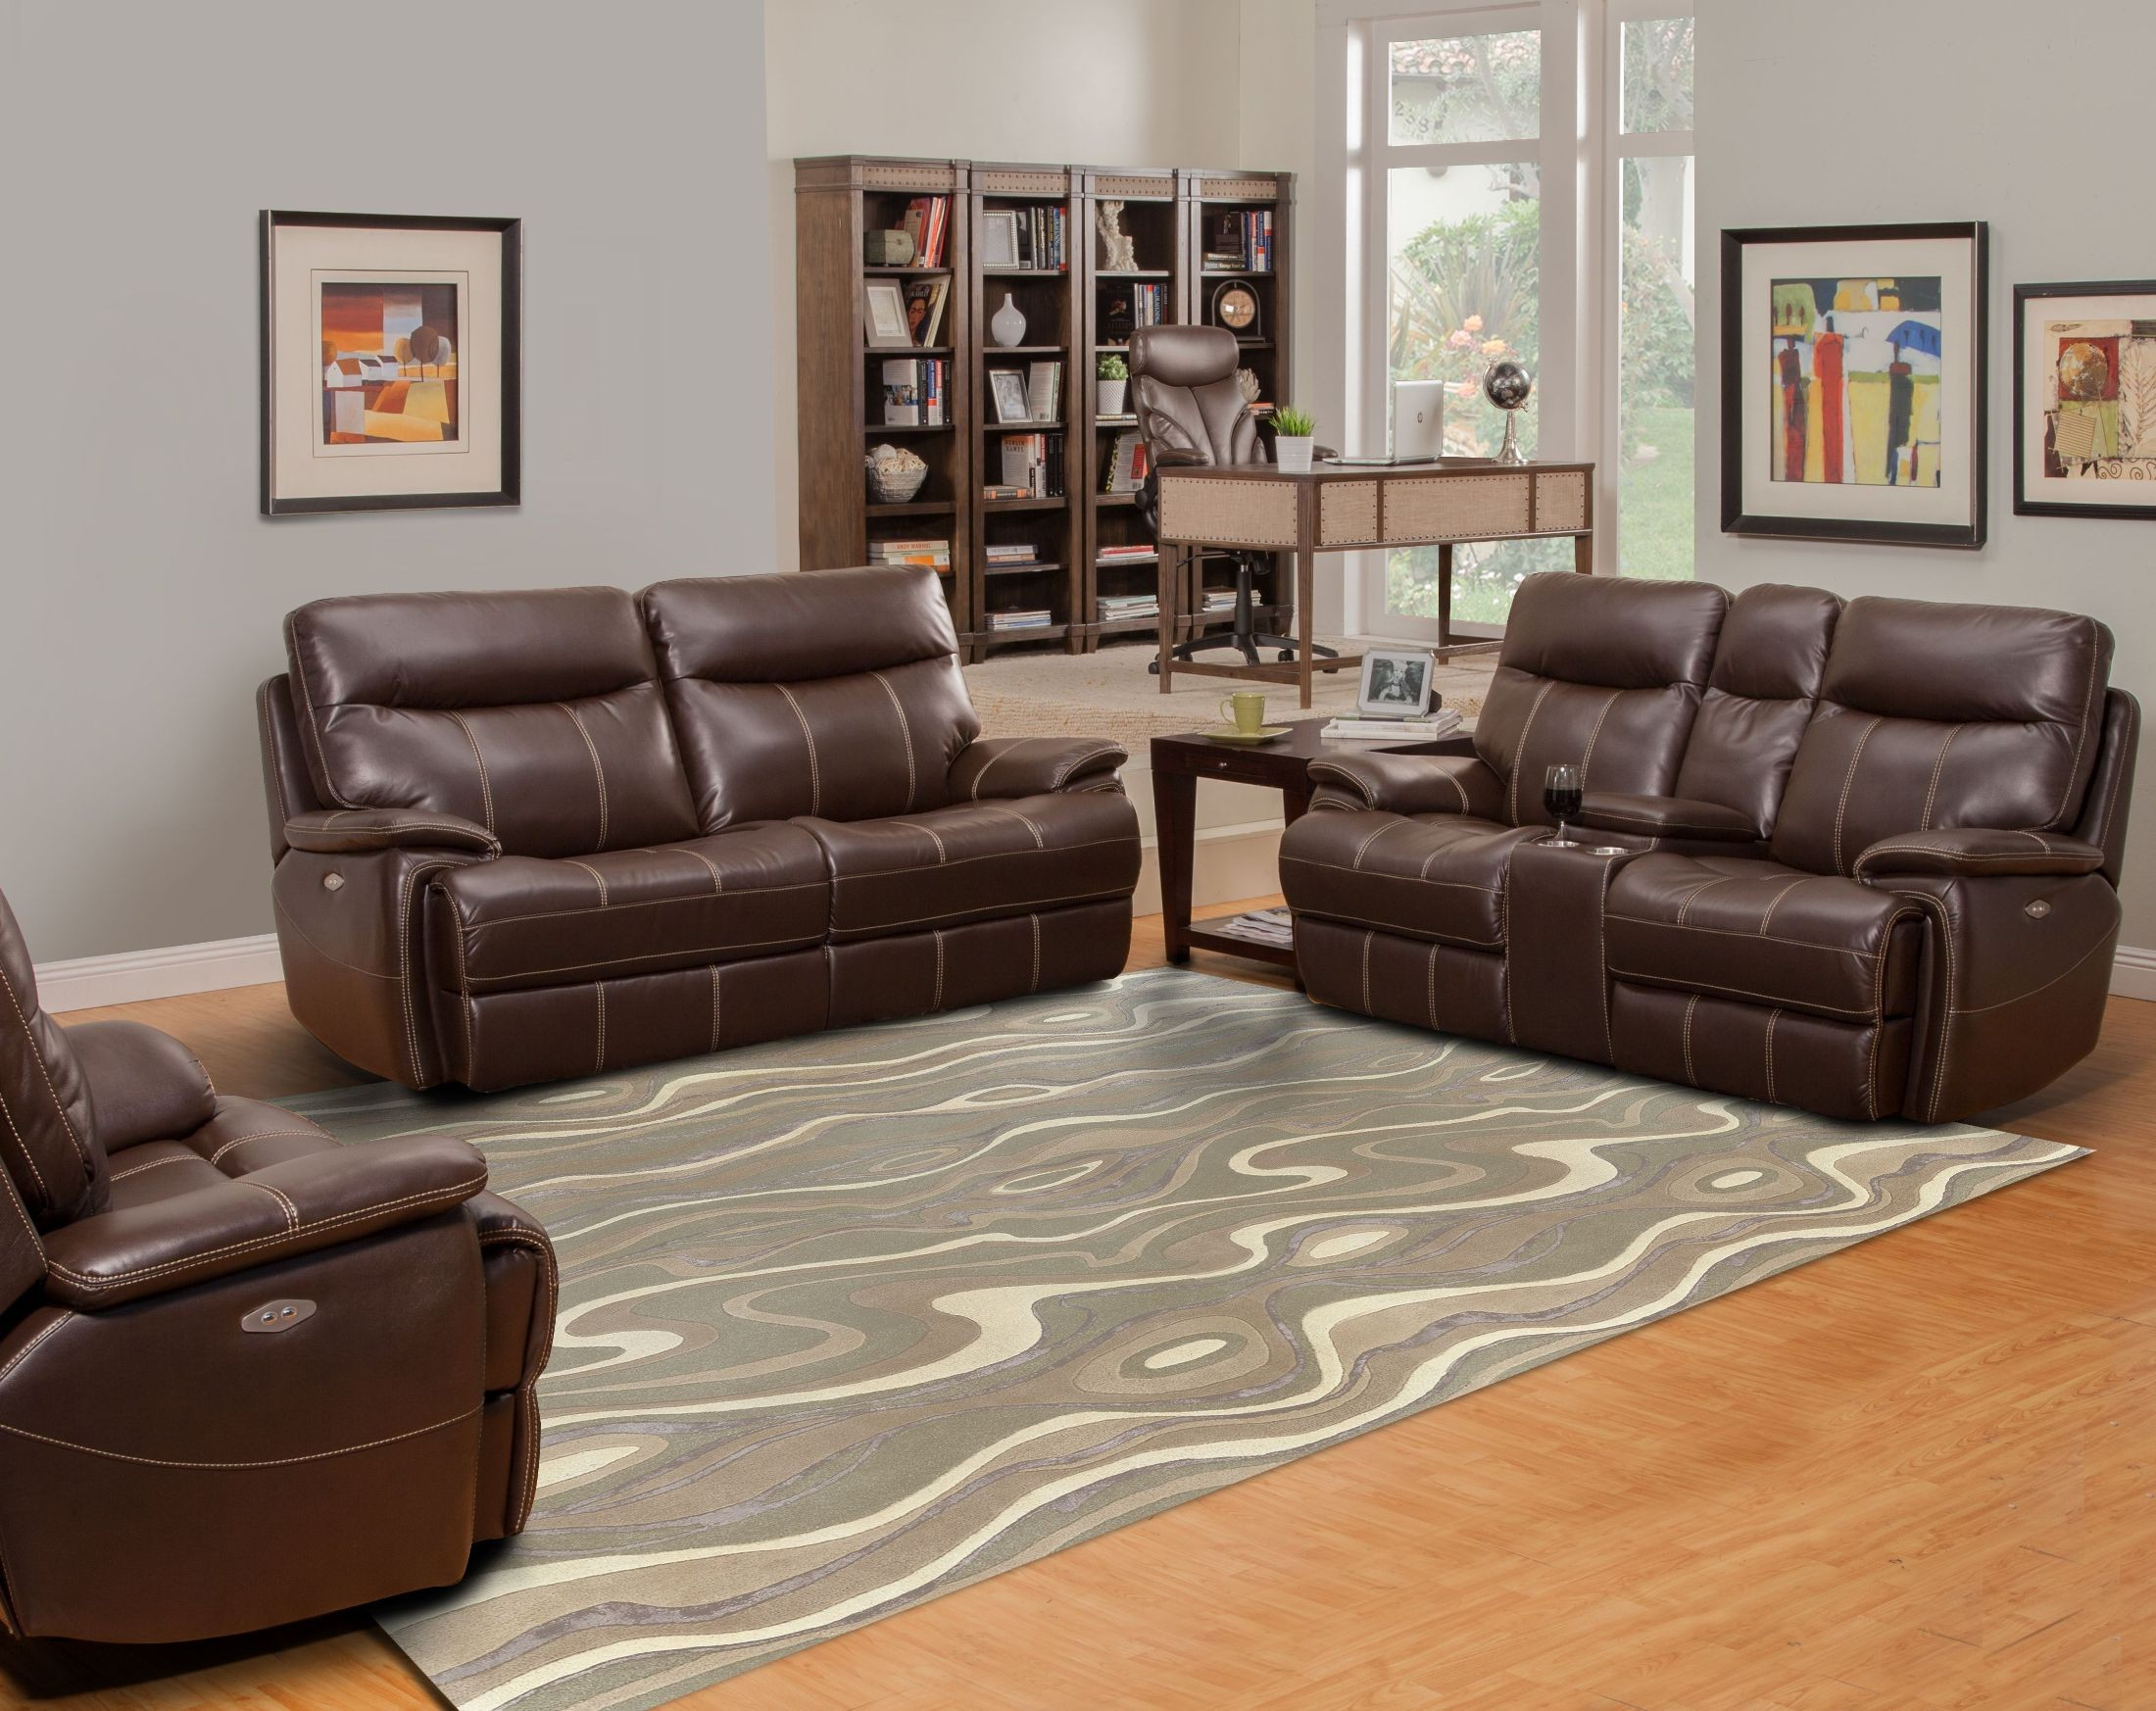 Dylan mahogany dual power reclining living room set from Reclining living room furniture